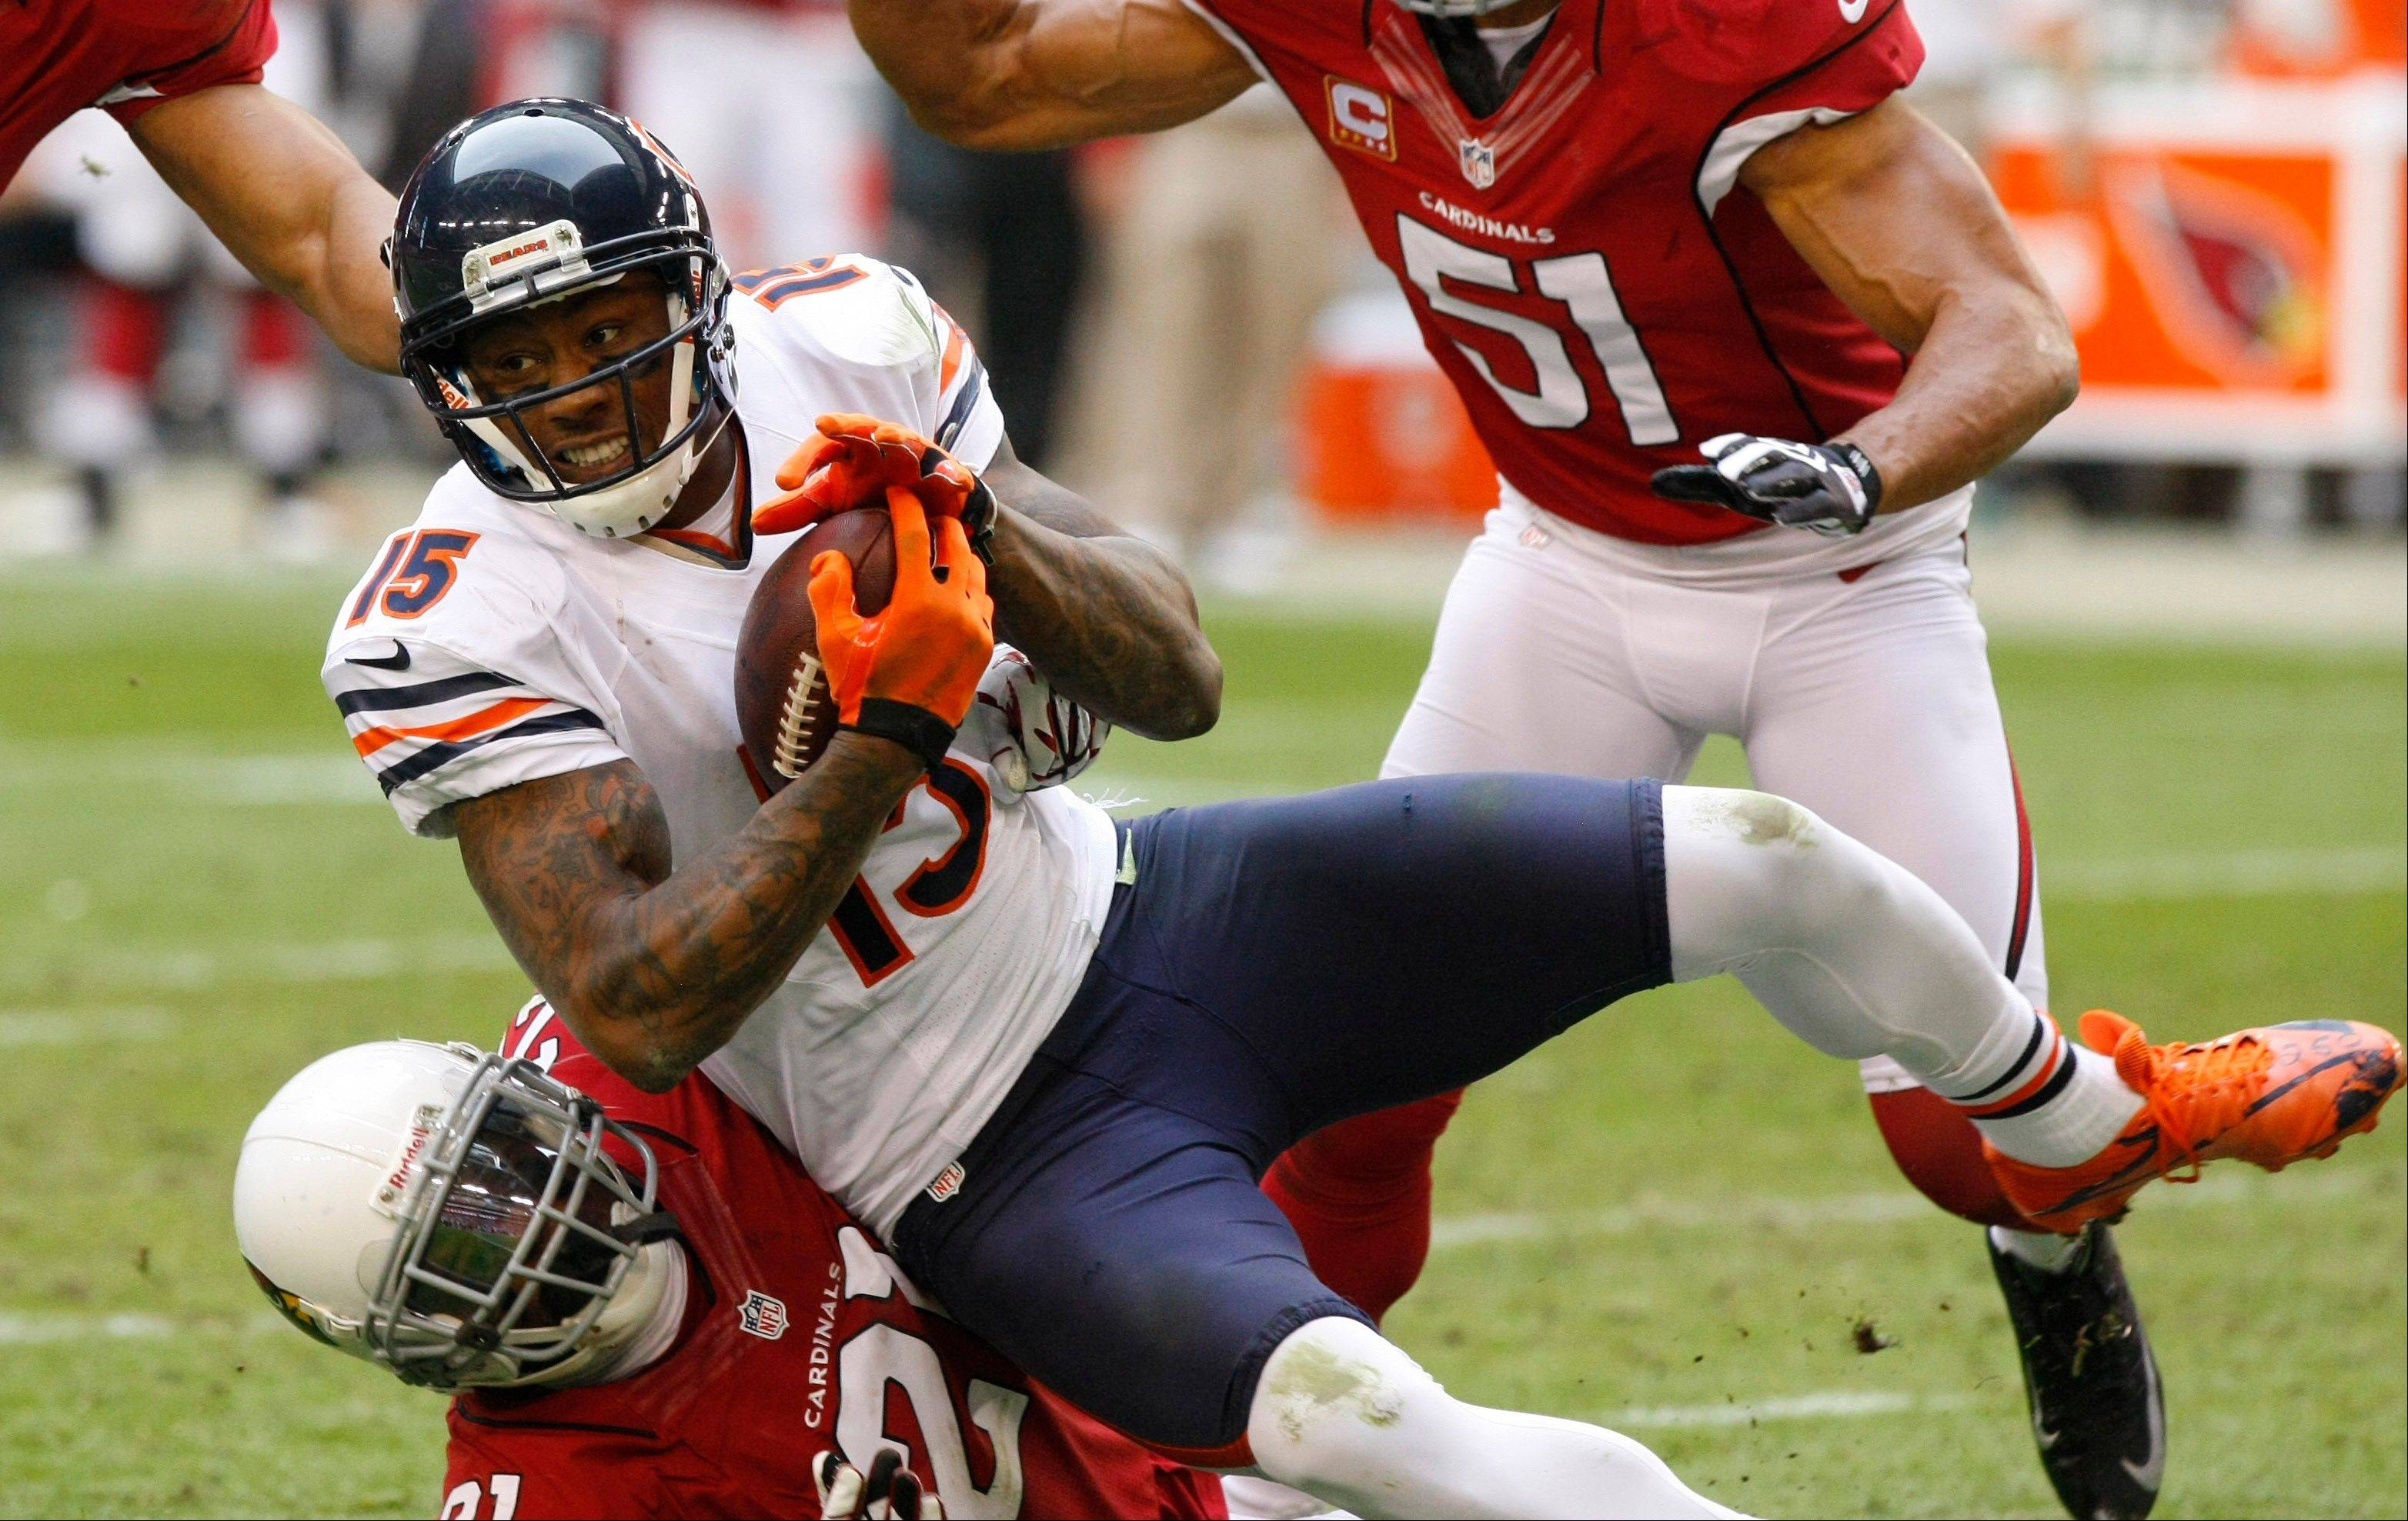 Bears' Marshall promises to do better next time